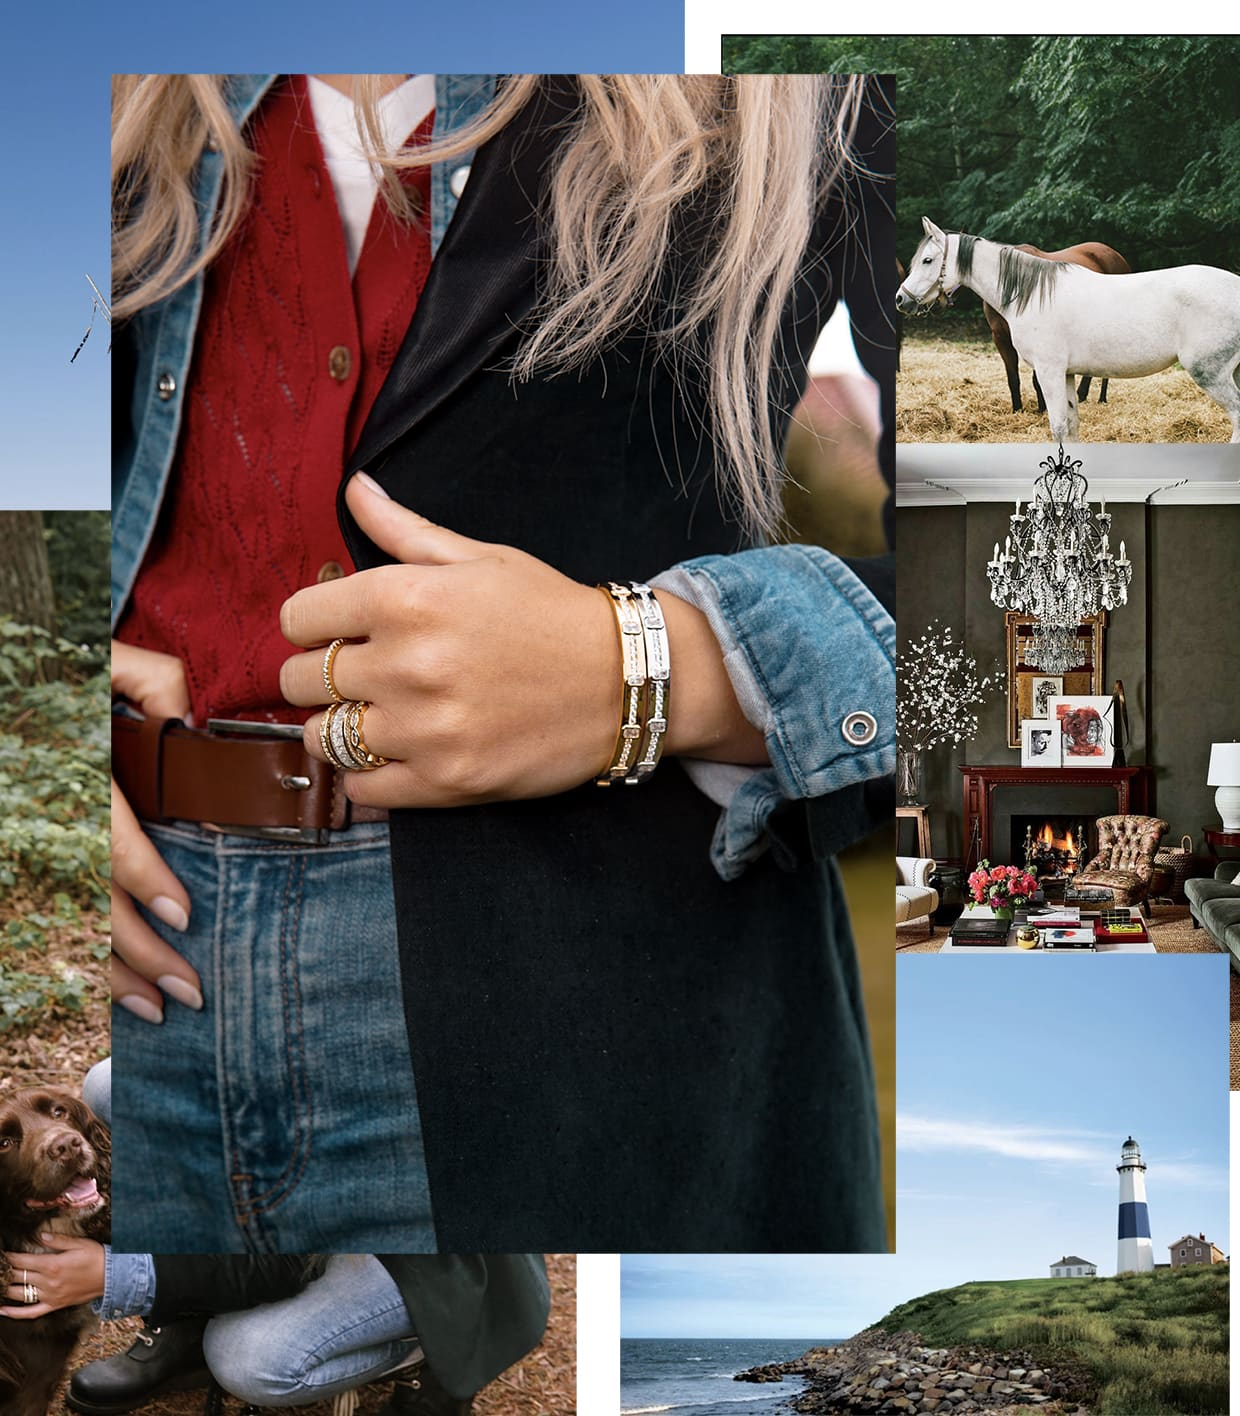 Abelstedt jewelry on the countryside